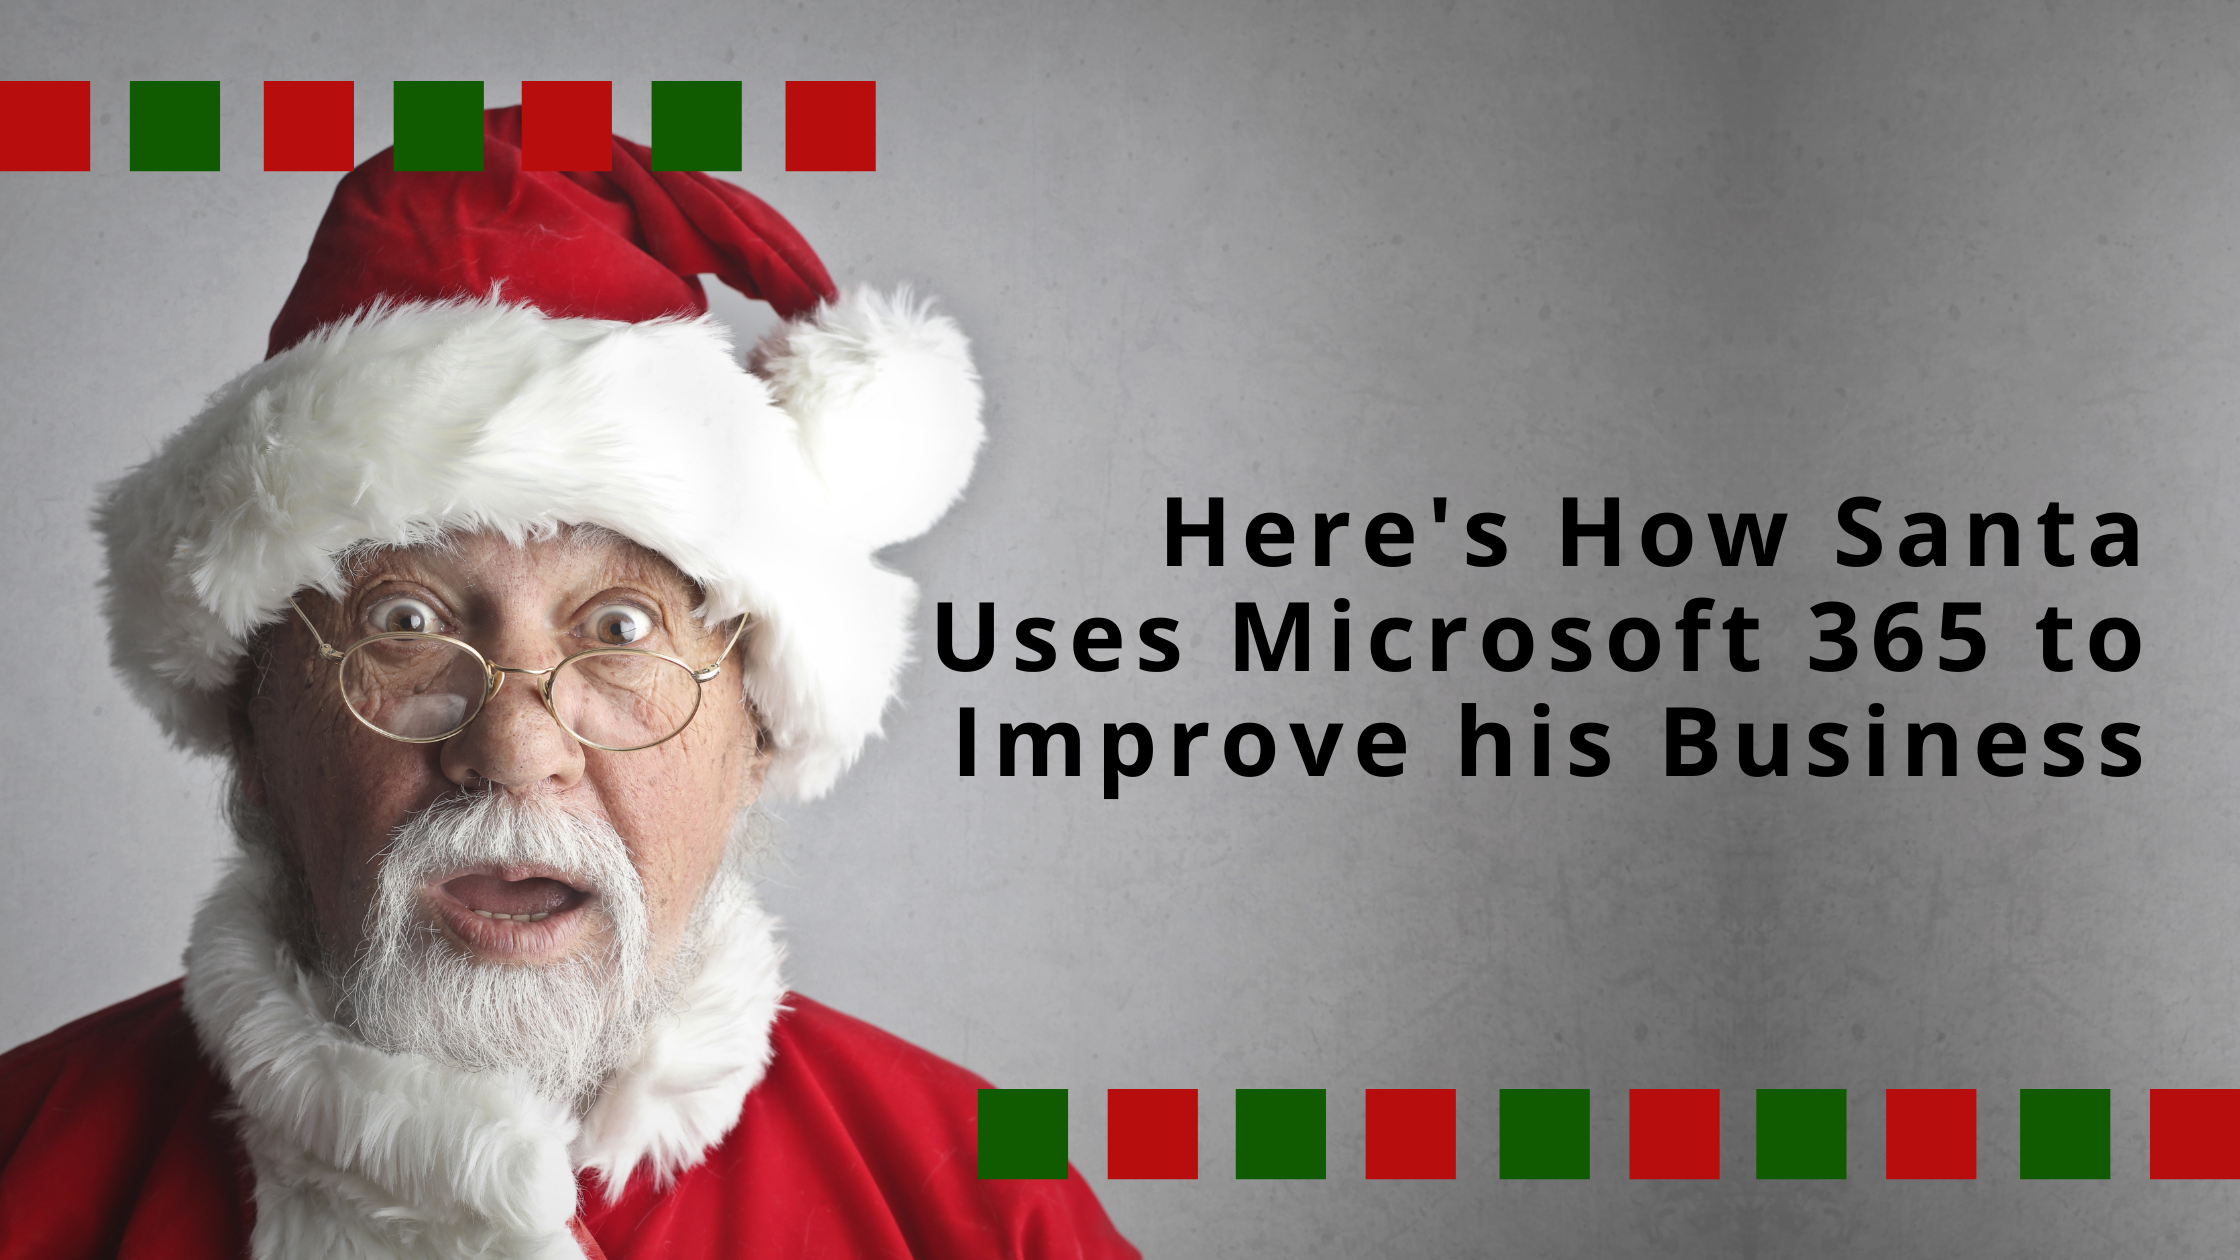 Here's How Santa Uses Microsoft 365 to Improve his Business